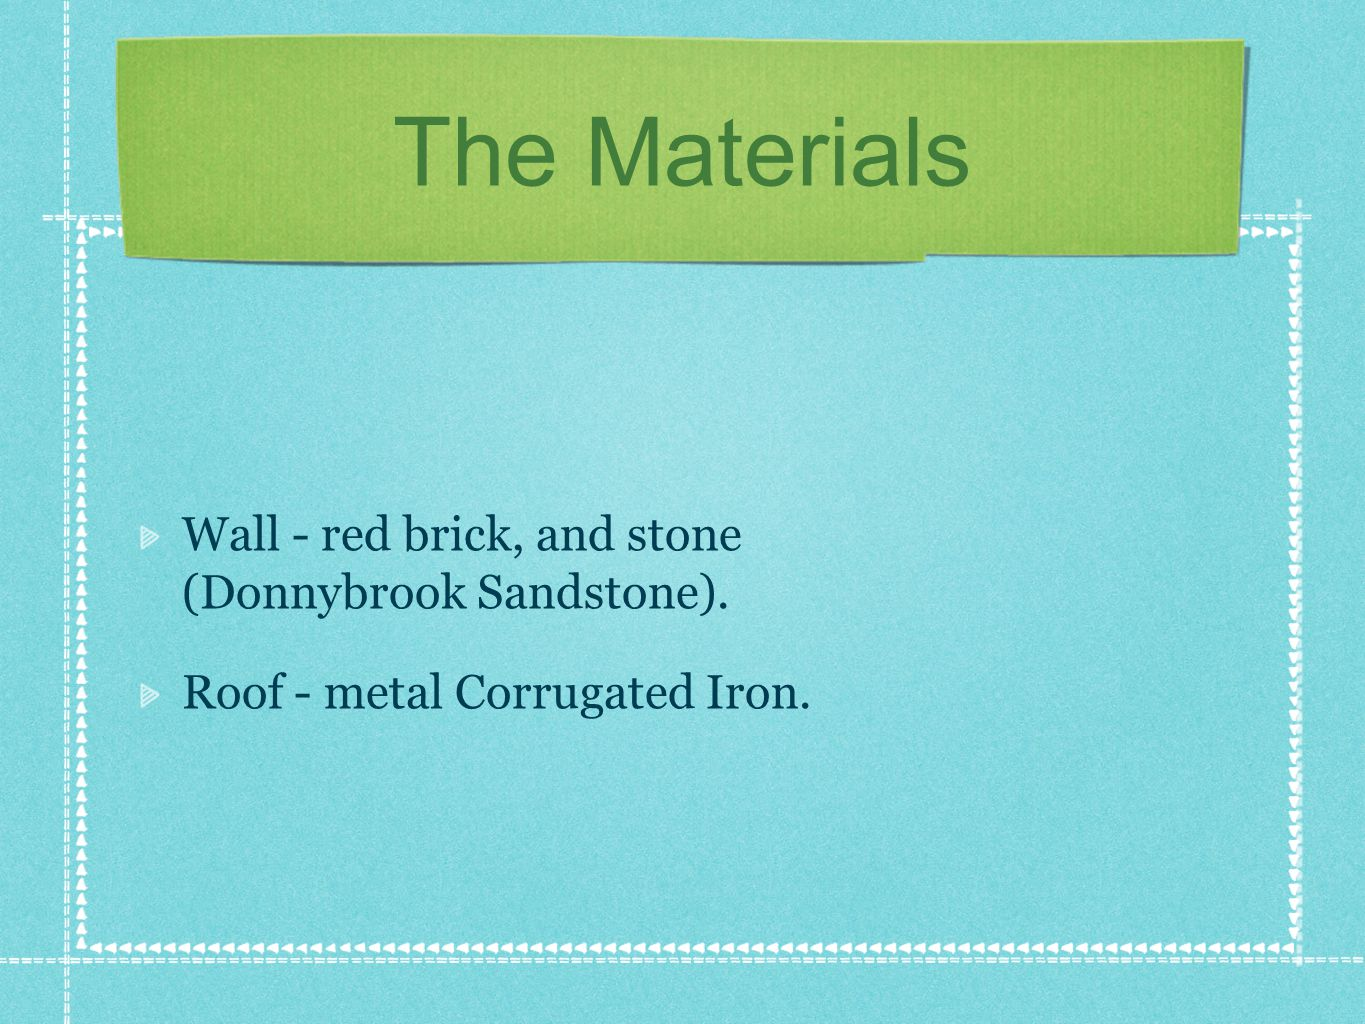 The Materials Wall - red brick, and stone (Donnybrook Sandstone). Roof - metal Corrugated Iron.